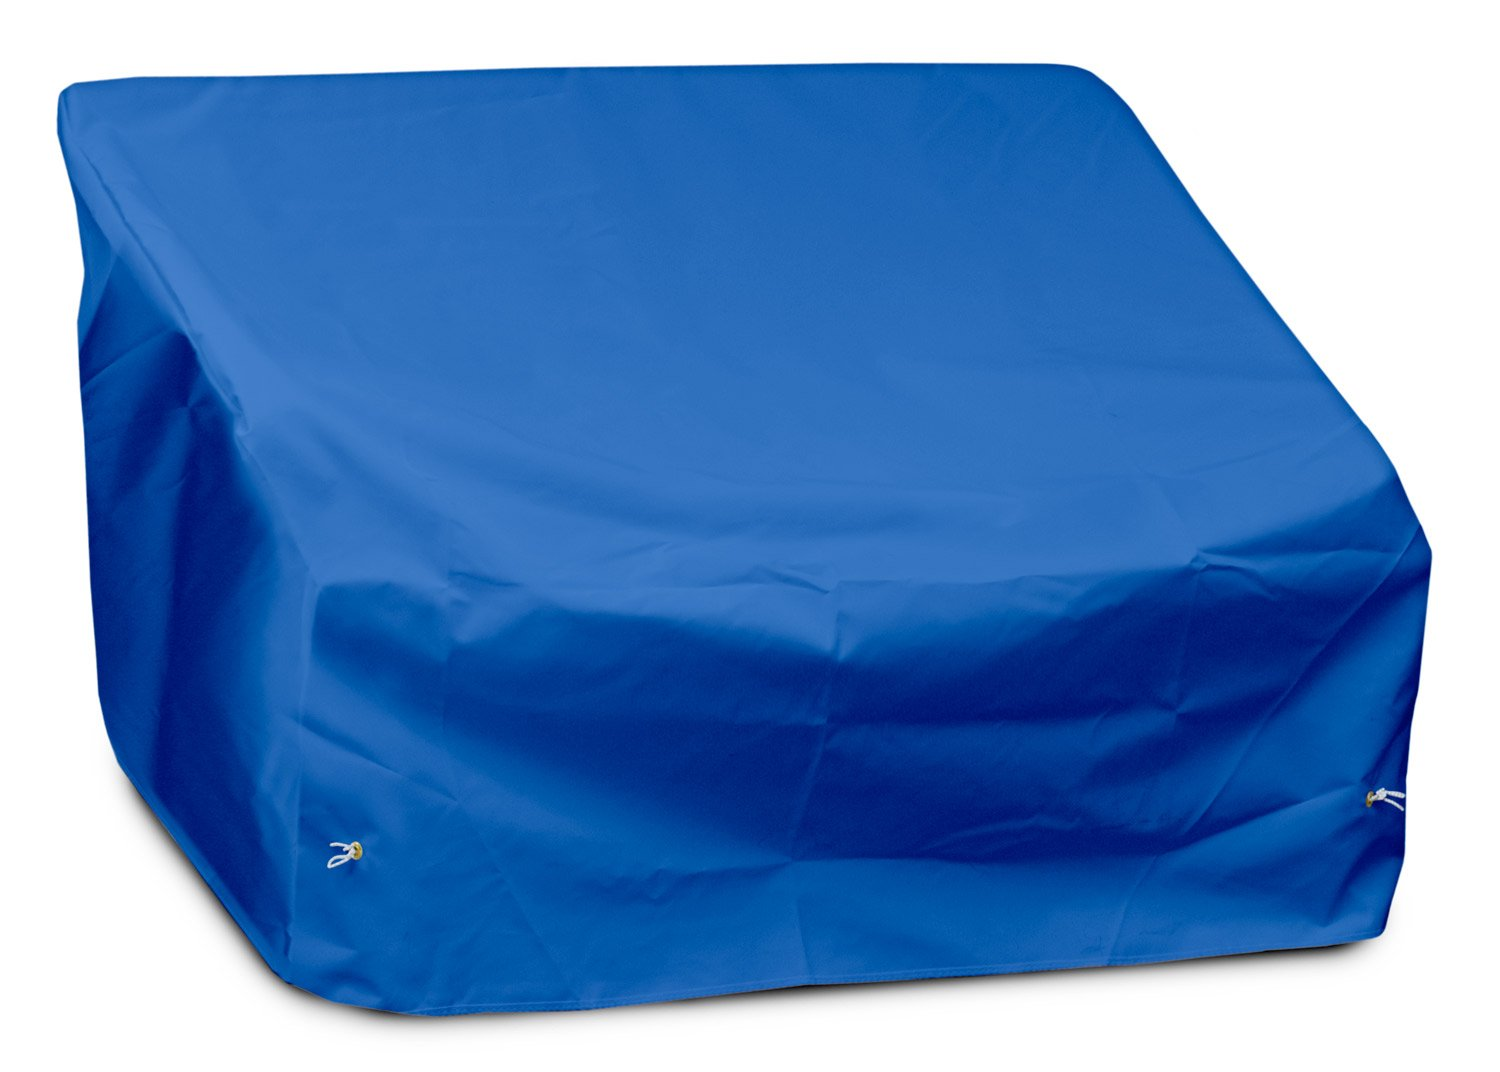 KoverRoos Weathermax 09147 Loveseat/Sofa Cover, 51-Inch Width by 33-Inch Diameter by 33-Inch Height, Pacific Blue